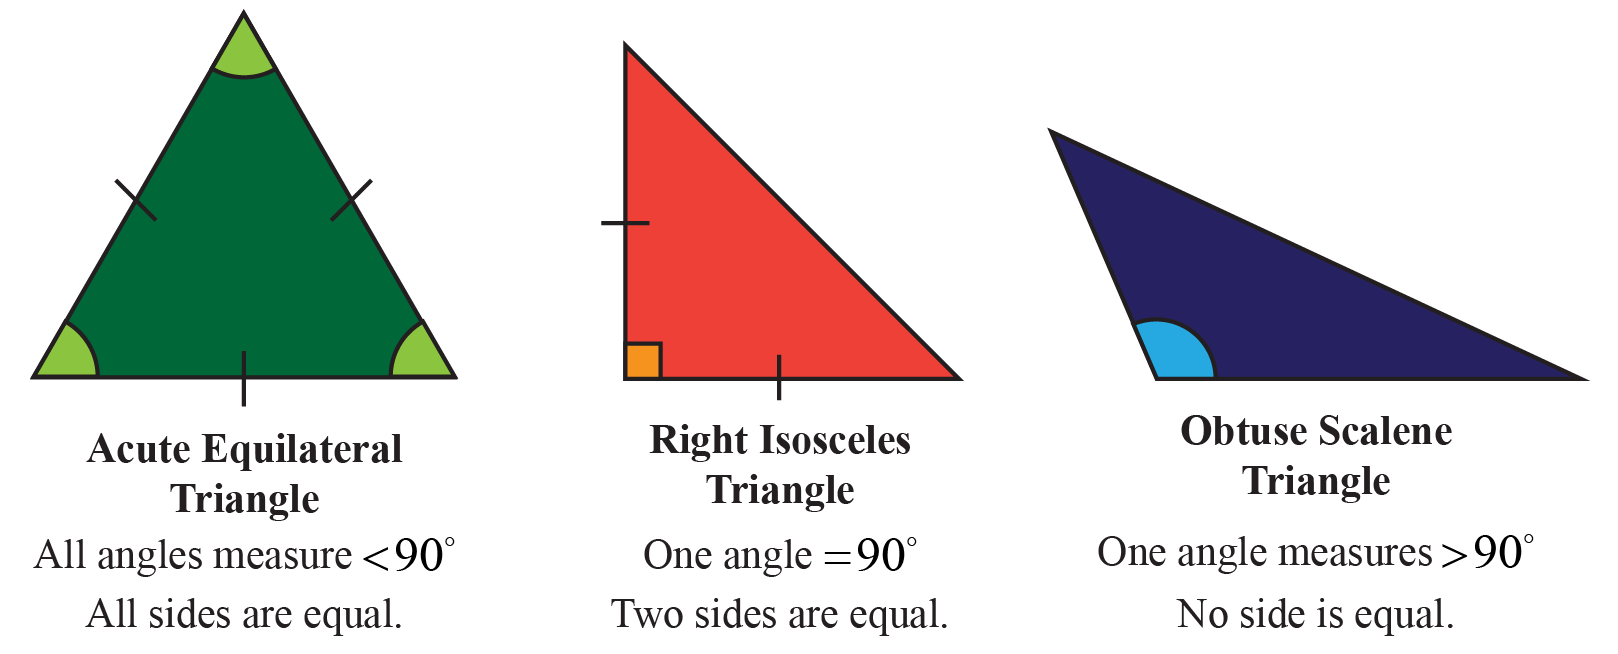 Types of triangles | Angles and sides of a triangle